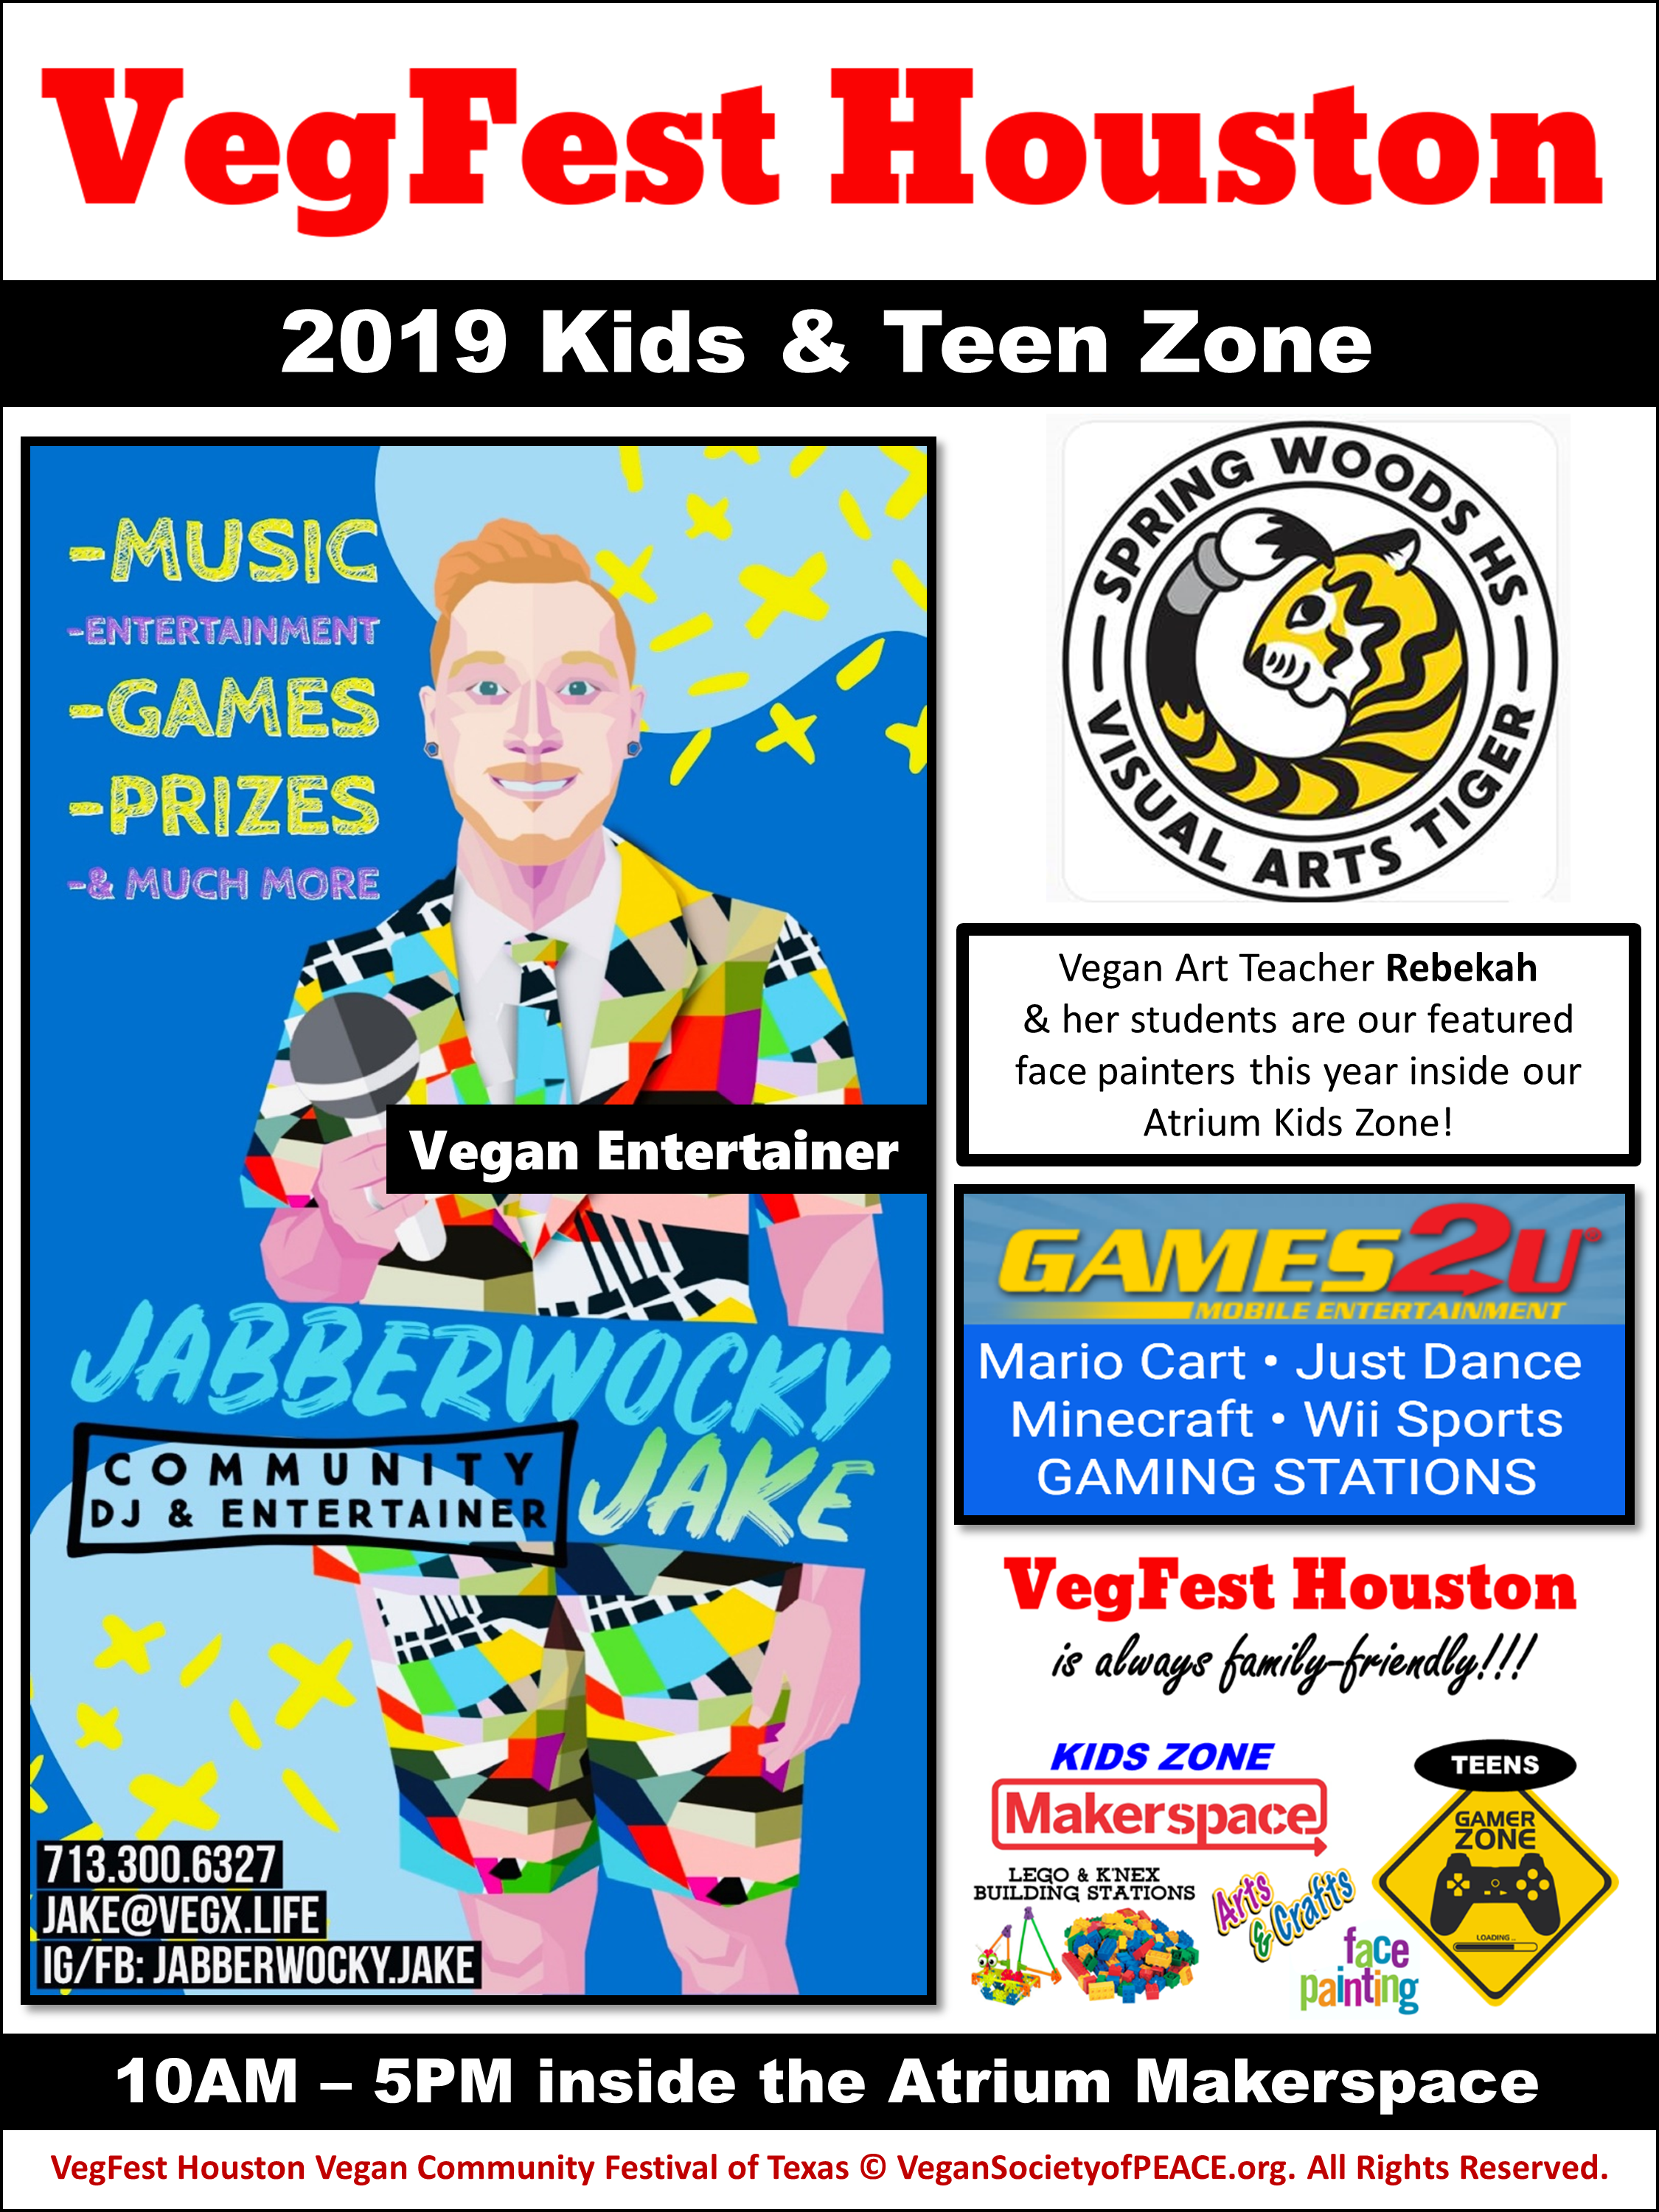 7th Annual VegFest Houston Vegan Society of PEACE Kids Zone Teen Zone